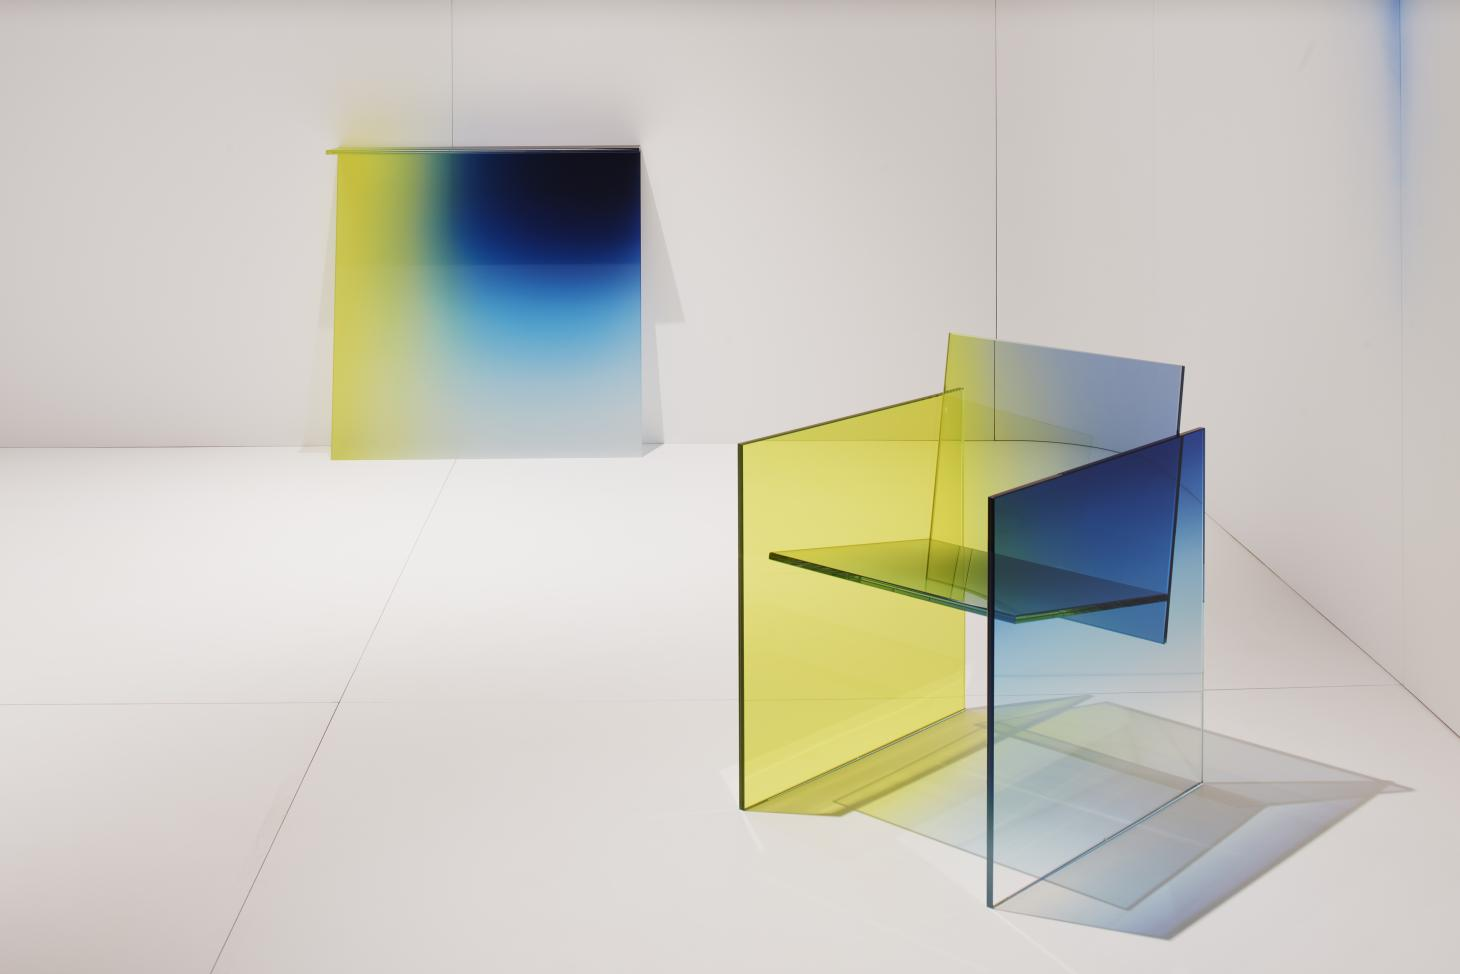 Glass chair and console with yellow to blue gradient   peter blake gallery at design miami basel 2021 image credit james harris 3